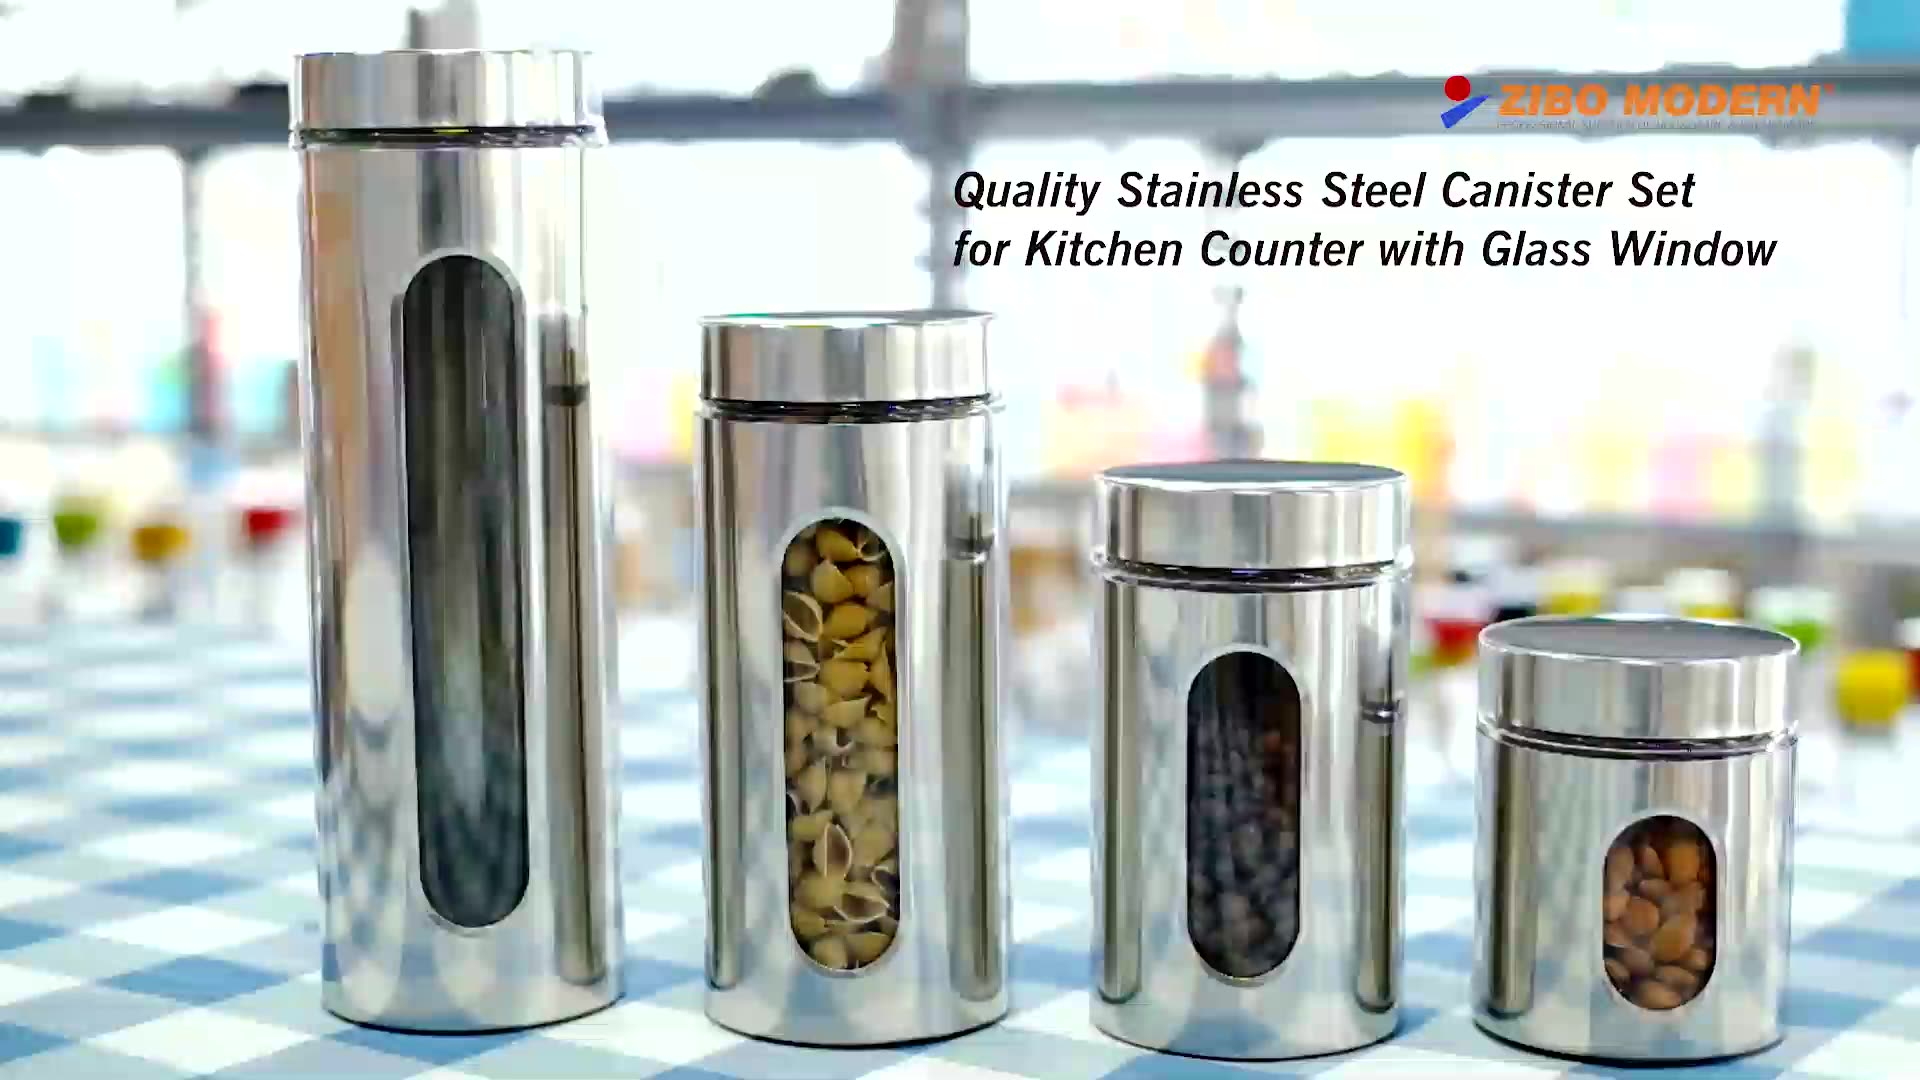 Quality Stainless Steel Canister Set for Kitchen Counter with Glass Window - Food Storage Containers with Lids Airtight